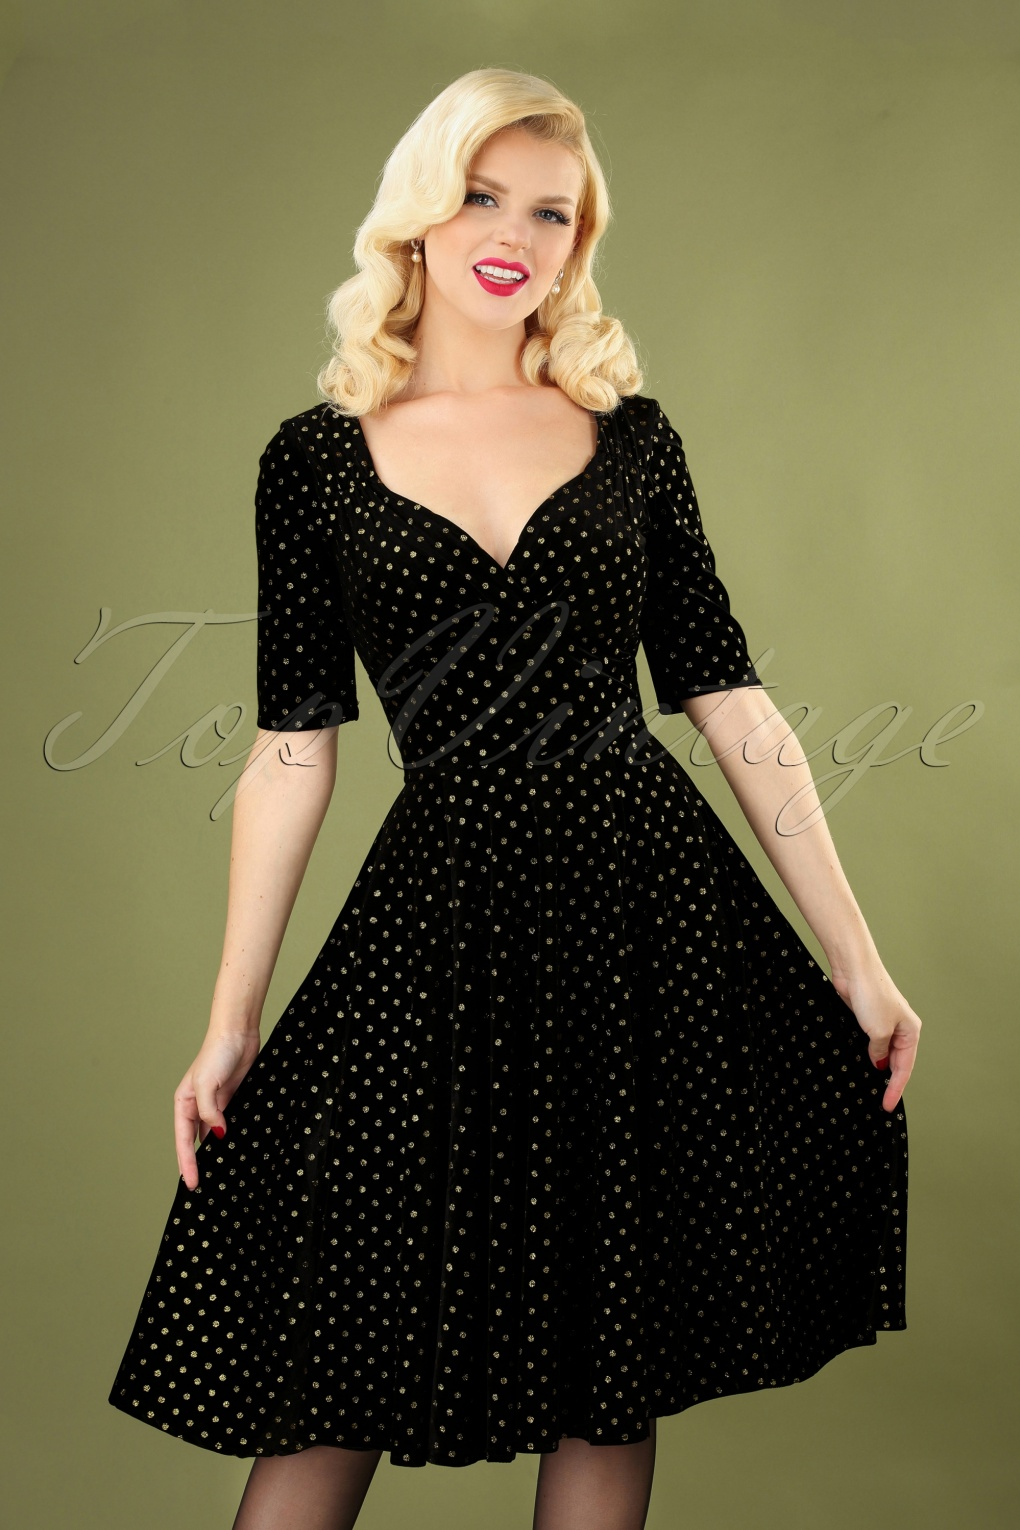 Vintage Inspired Dresses & Clothing UK 50s Trixie Golden Polka Velvet Doll Swing Dress in Black £64.13 AT vintagedancer.com